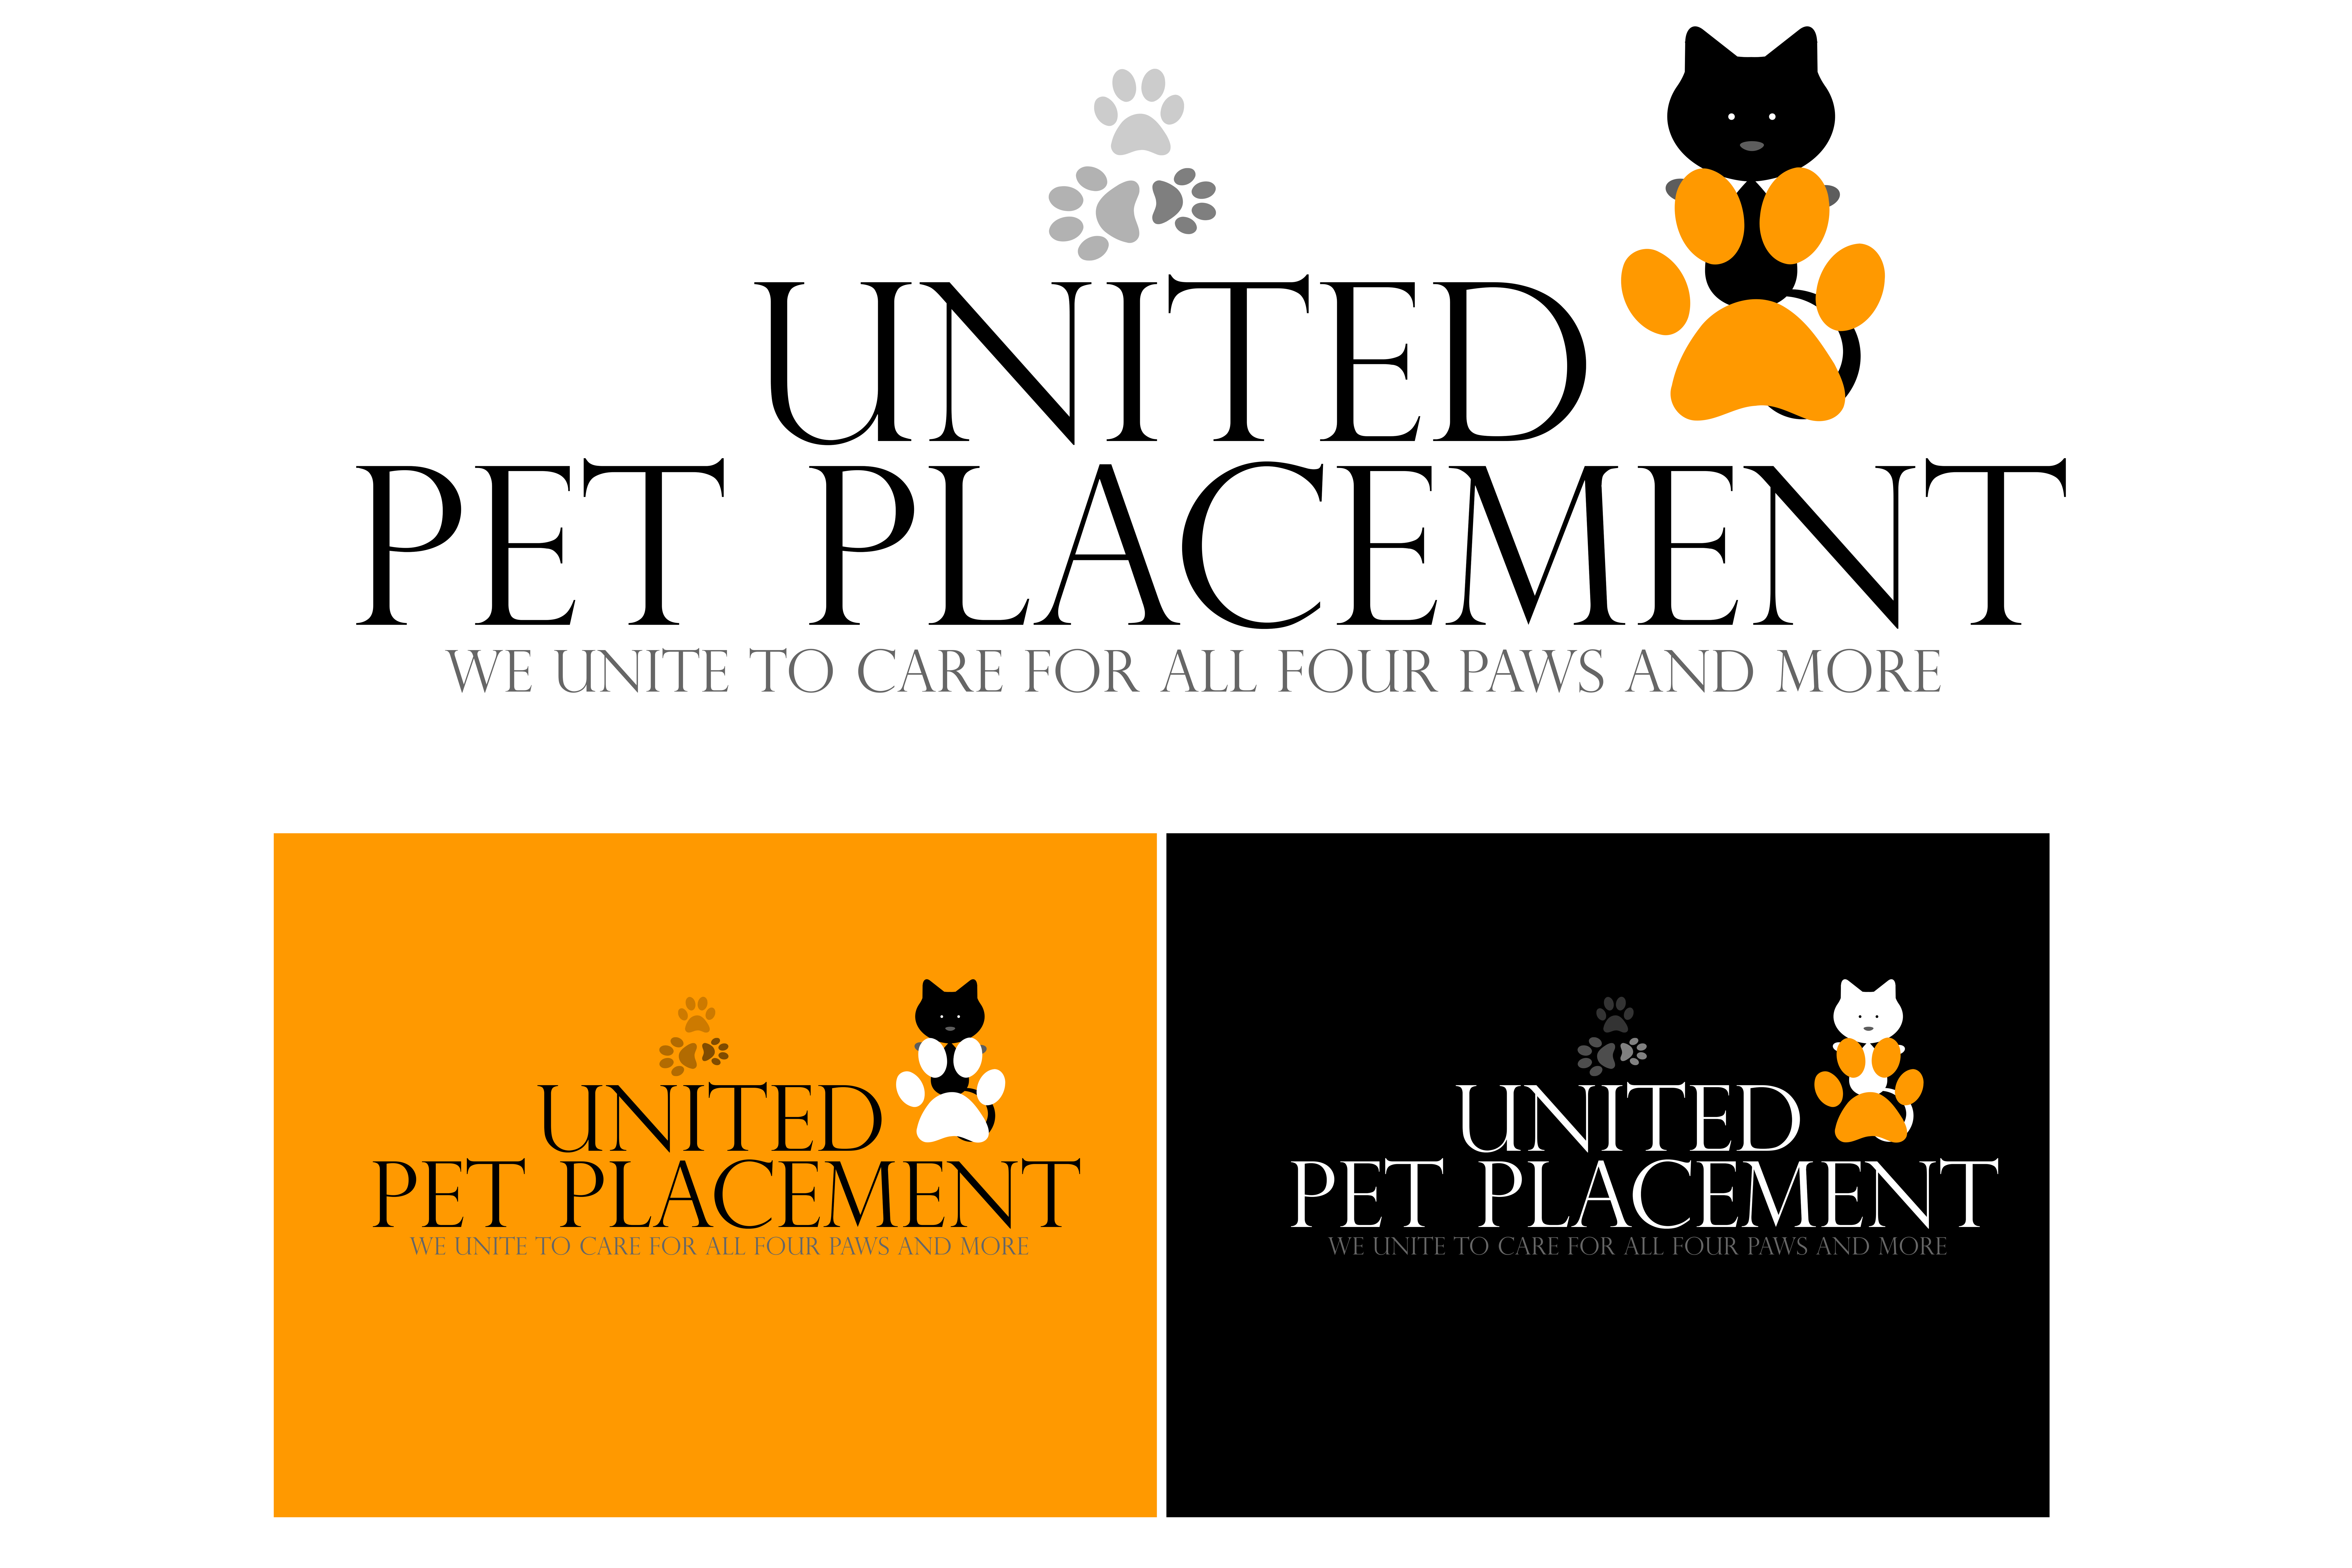 Logo Design by Leonard Anthony Alloso - Entry No. 80 in the Logo Design Contest Artistic Logo Design for united pet placement.